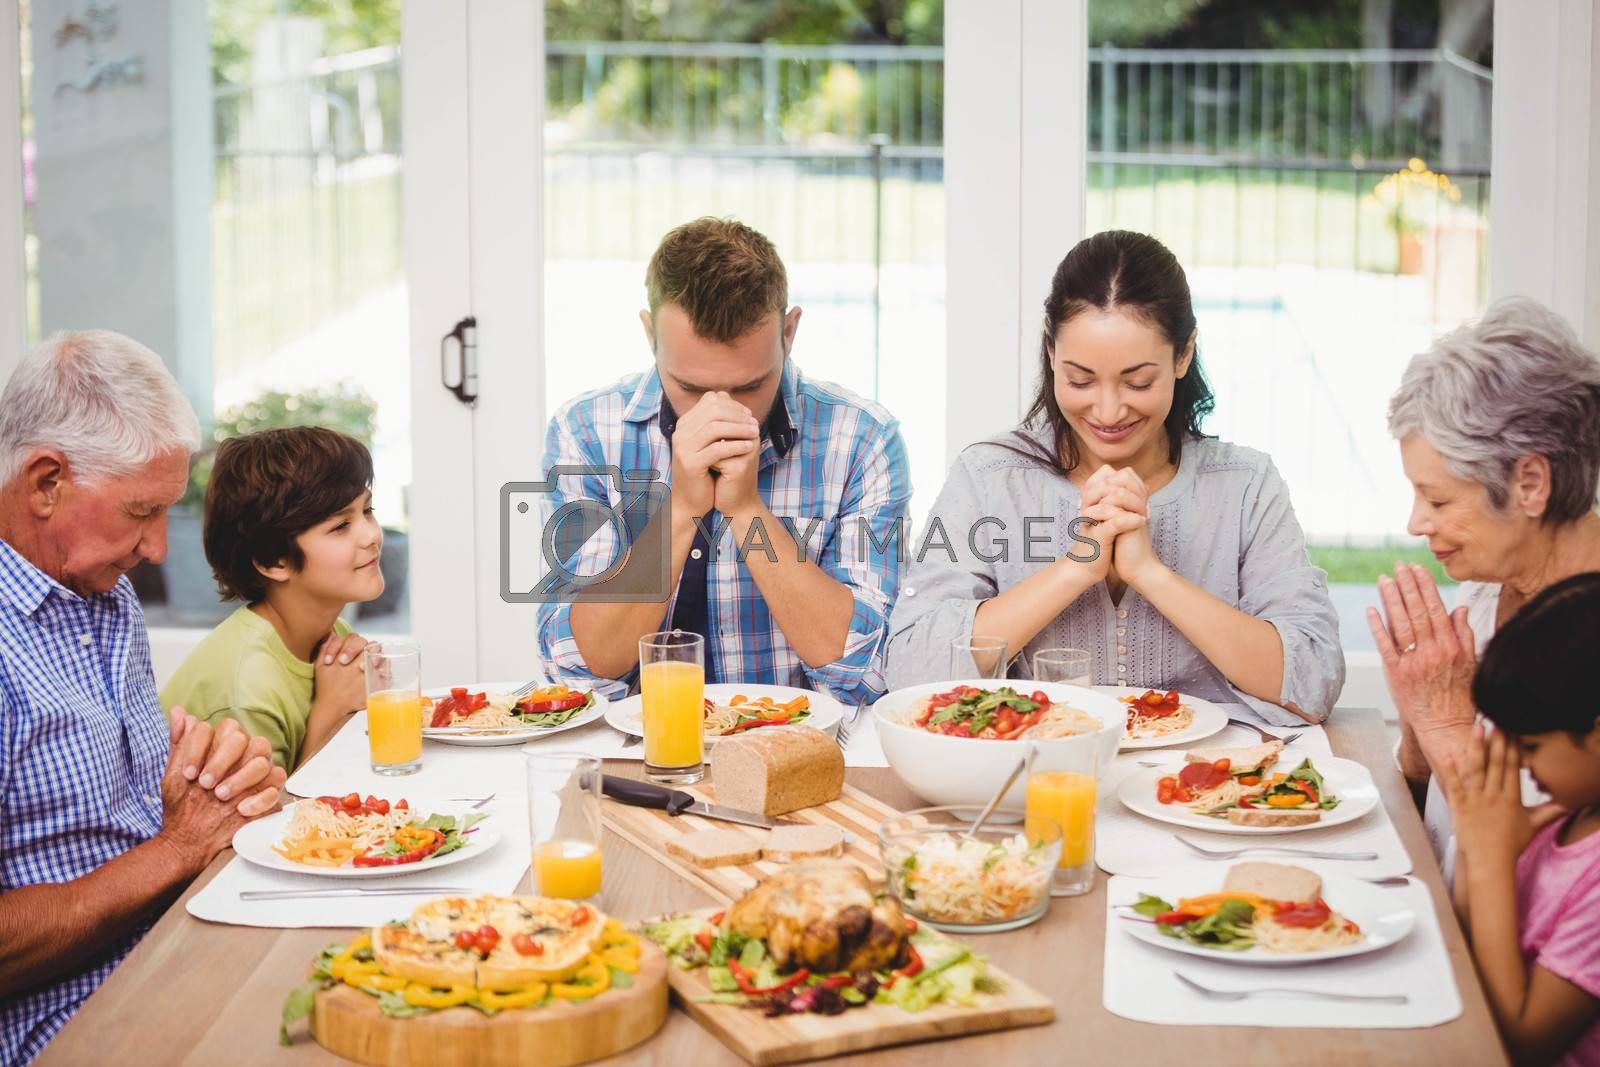 Family praying together before meal by Wavebreakmedia